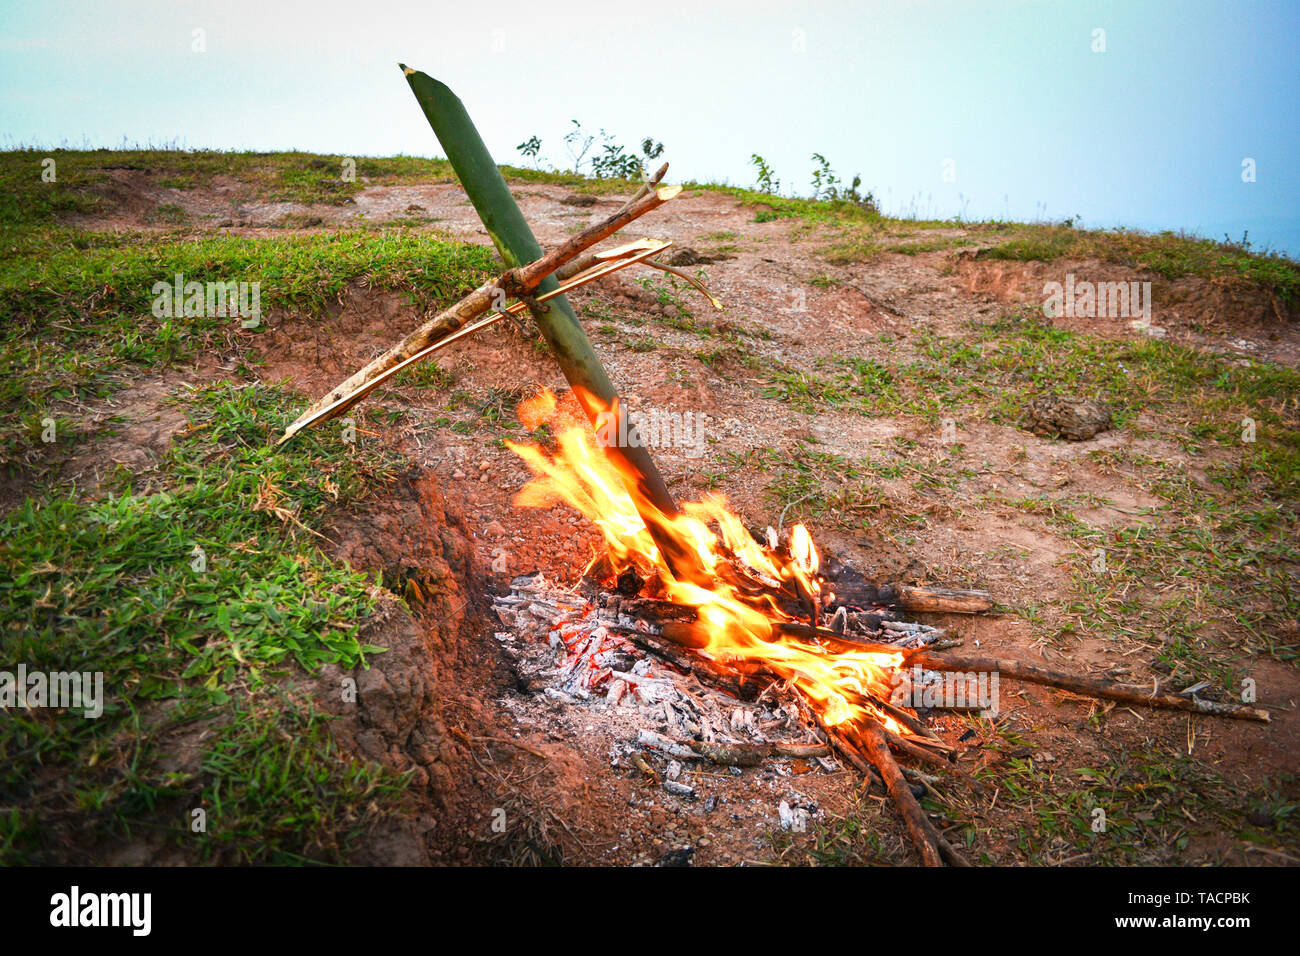 bamboo burn on fire for food boiled cooking nature / Survival the forest - Stock Image